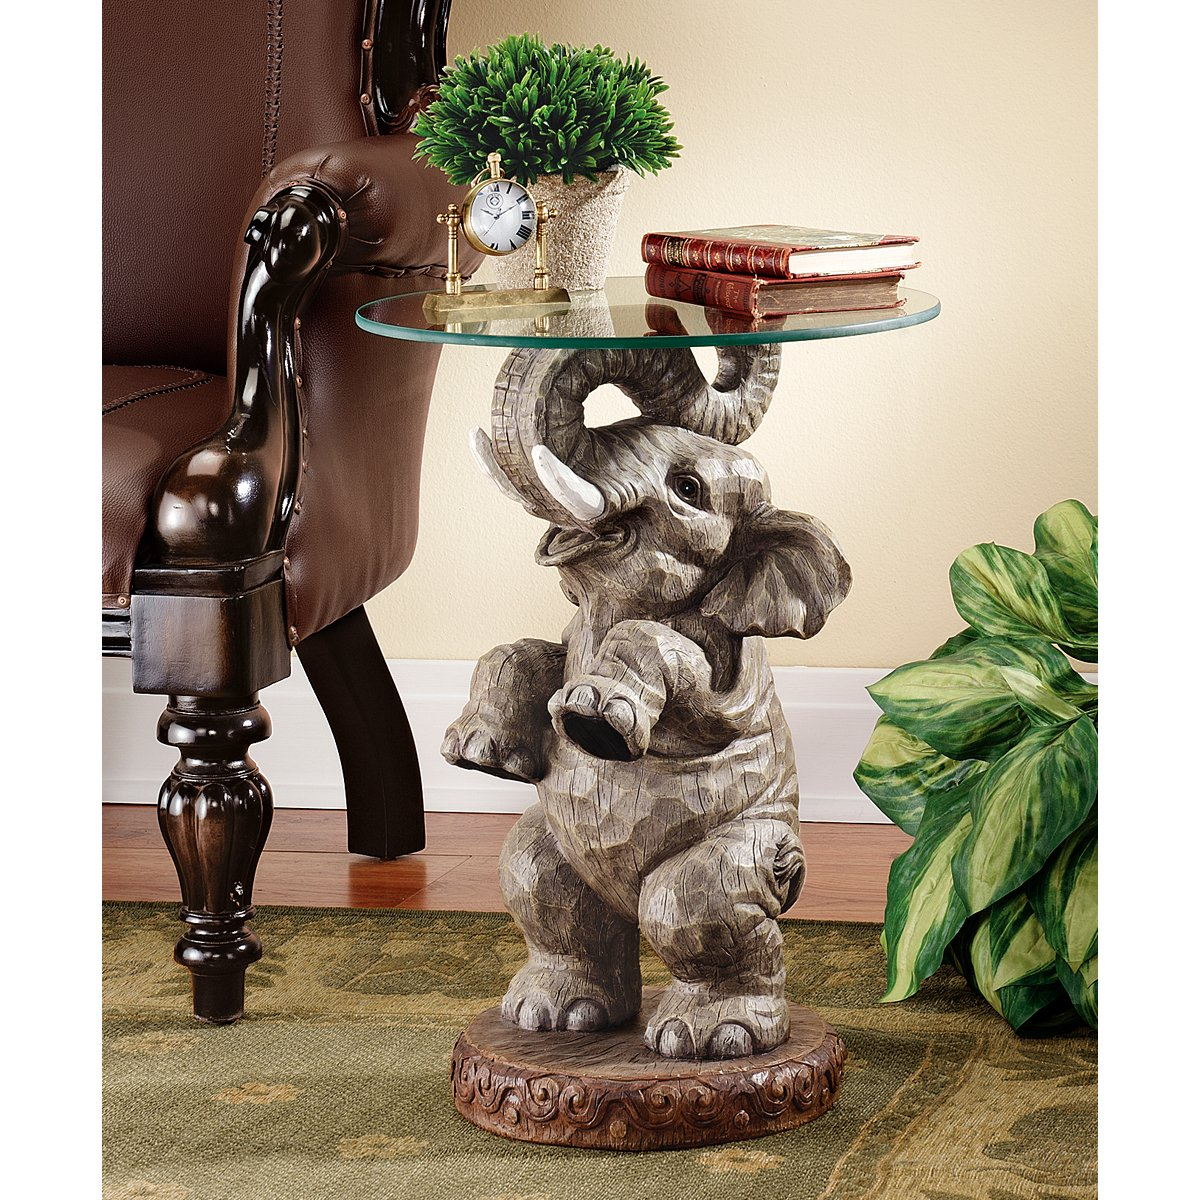 Amazon.com: Design Toscano Good Fortune Elephant End Table: Kitchen U0026 Dining